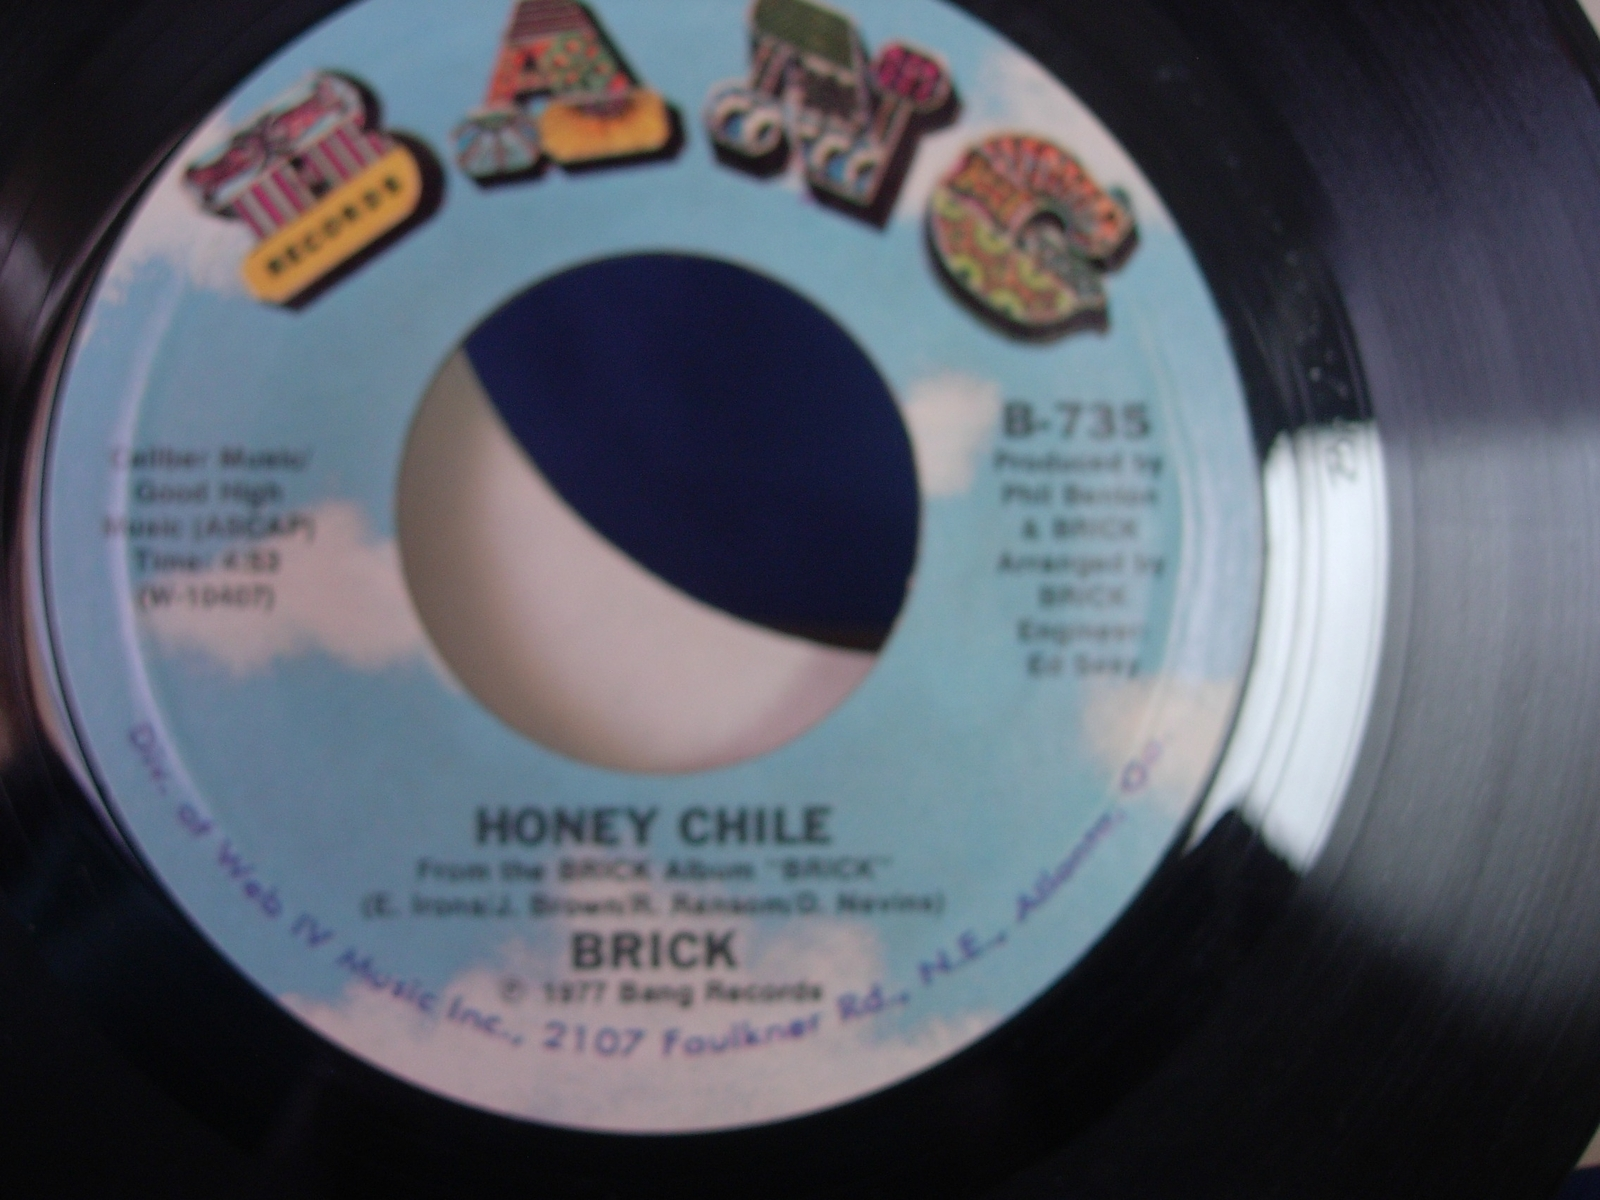 Brick - Ain't Gonna Hurt Nobody/Honey Chile -Bang Records B-735